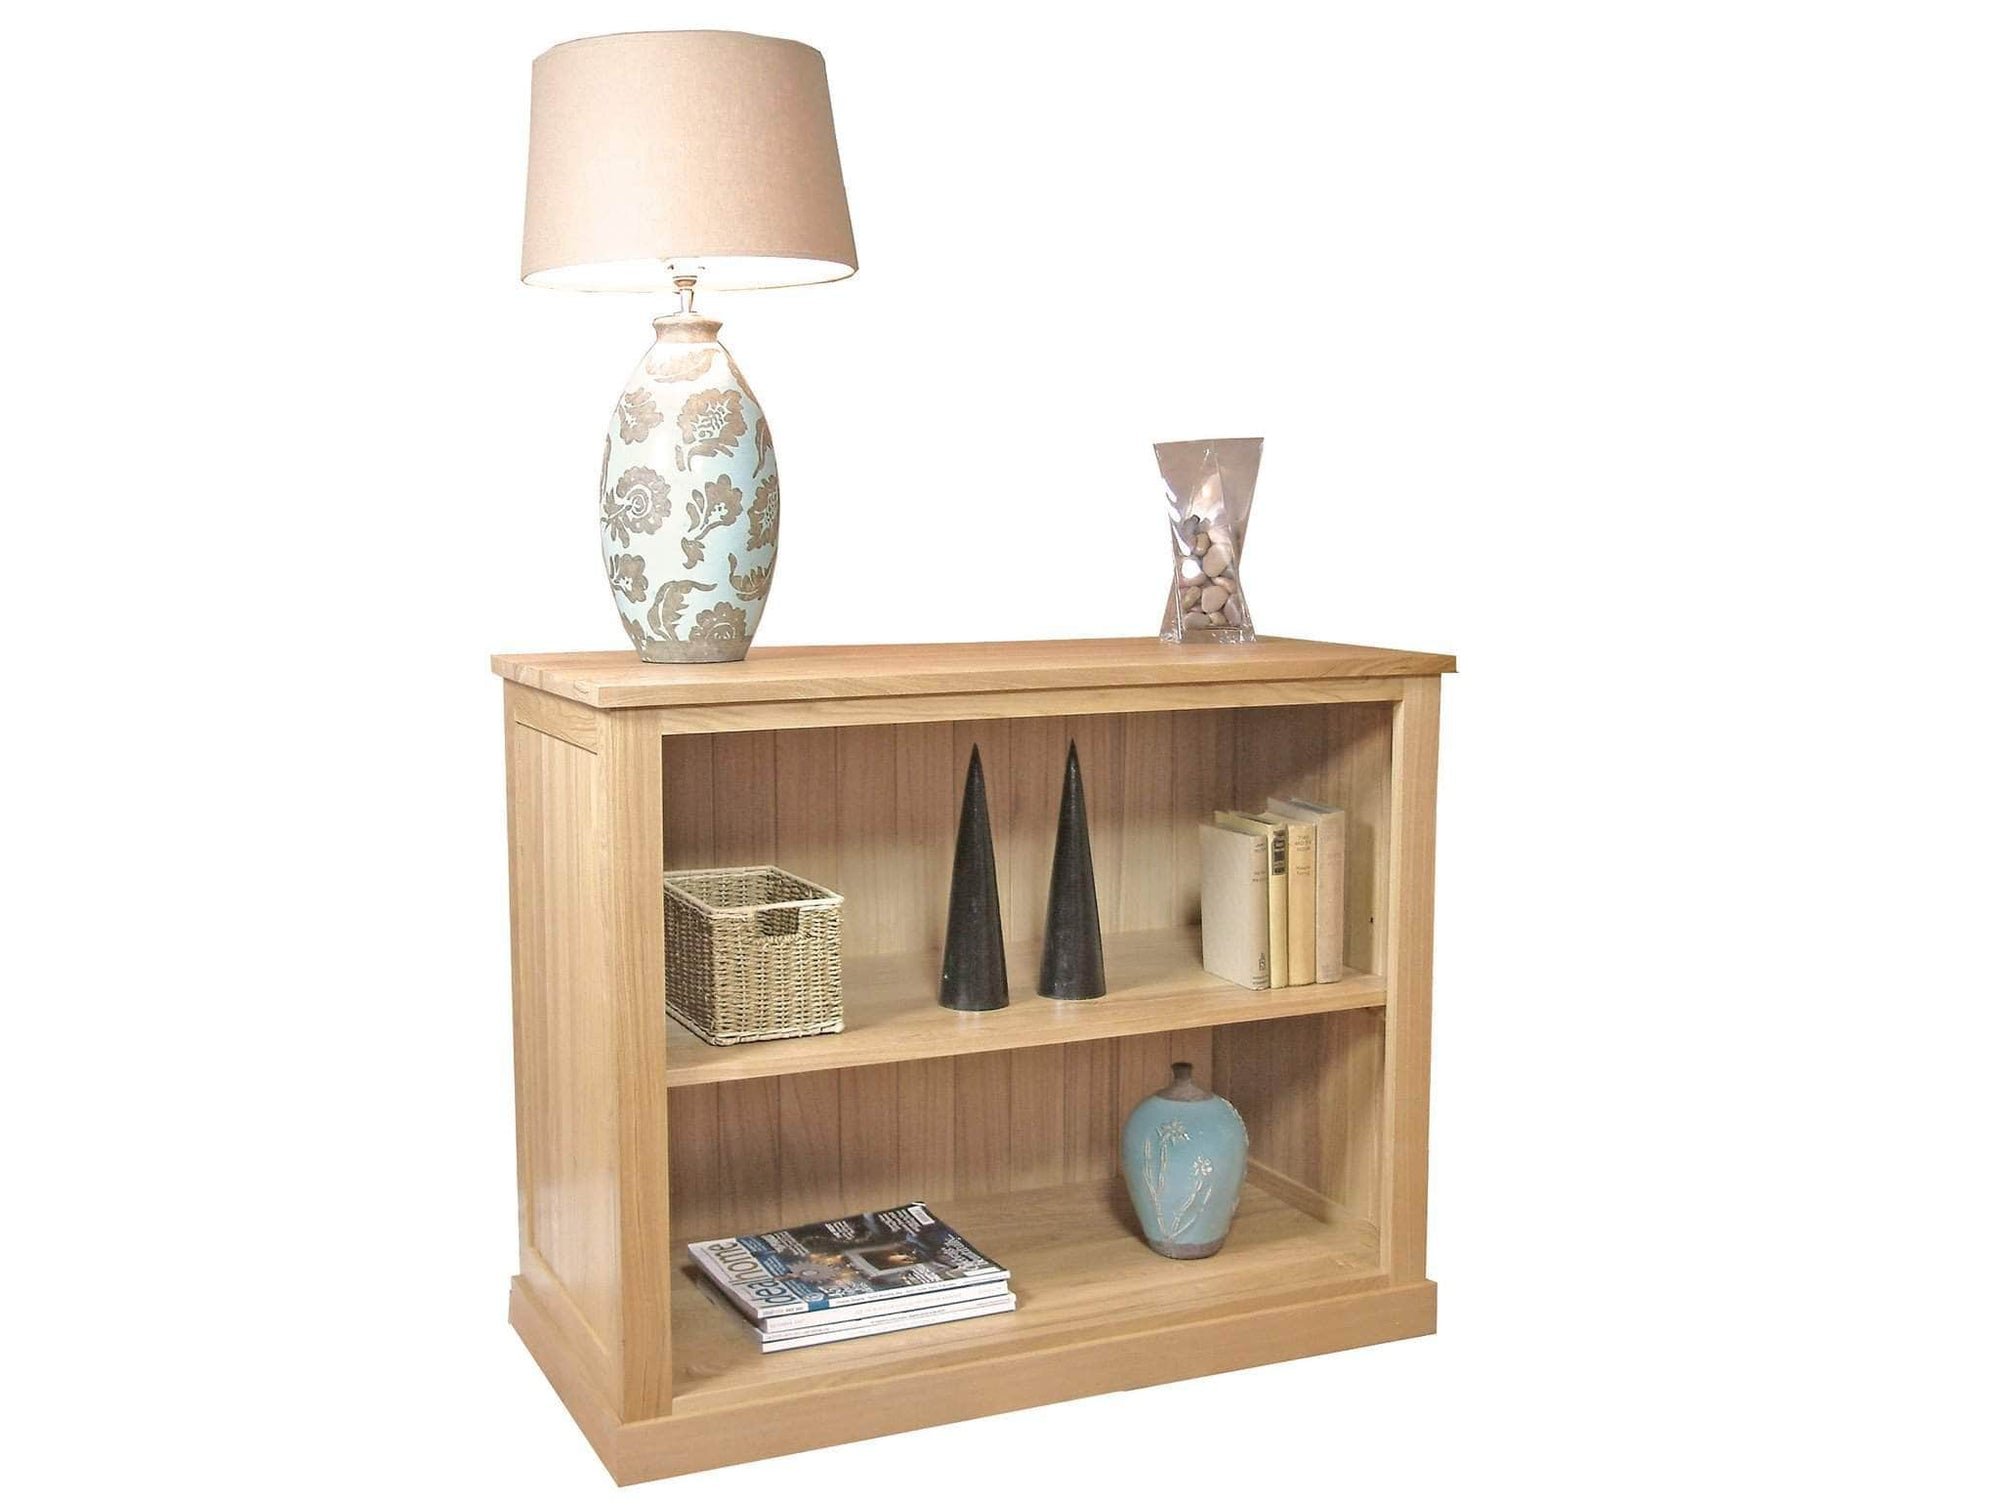 Small, low height bookcase made from solid oak, with one middle shelf